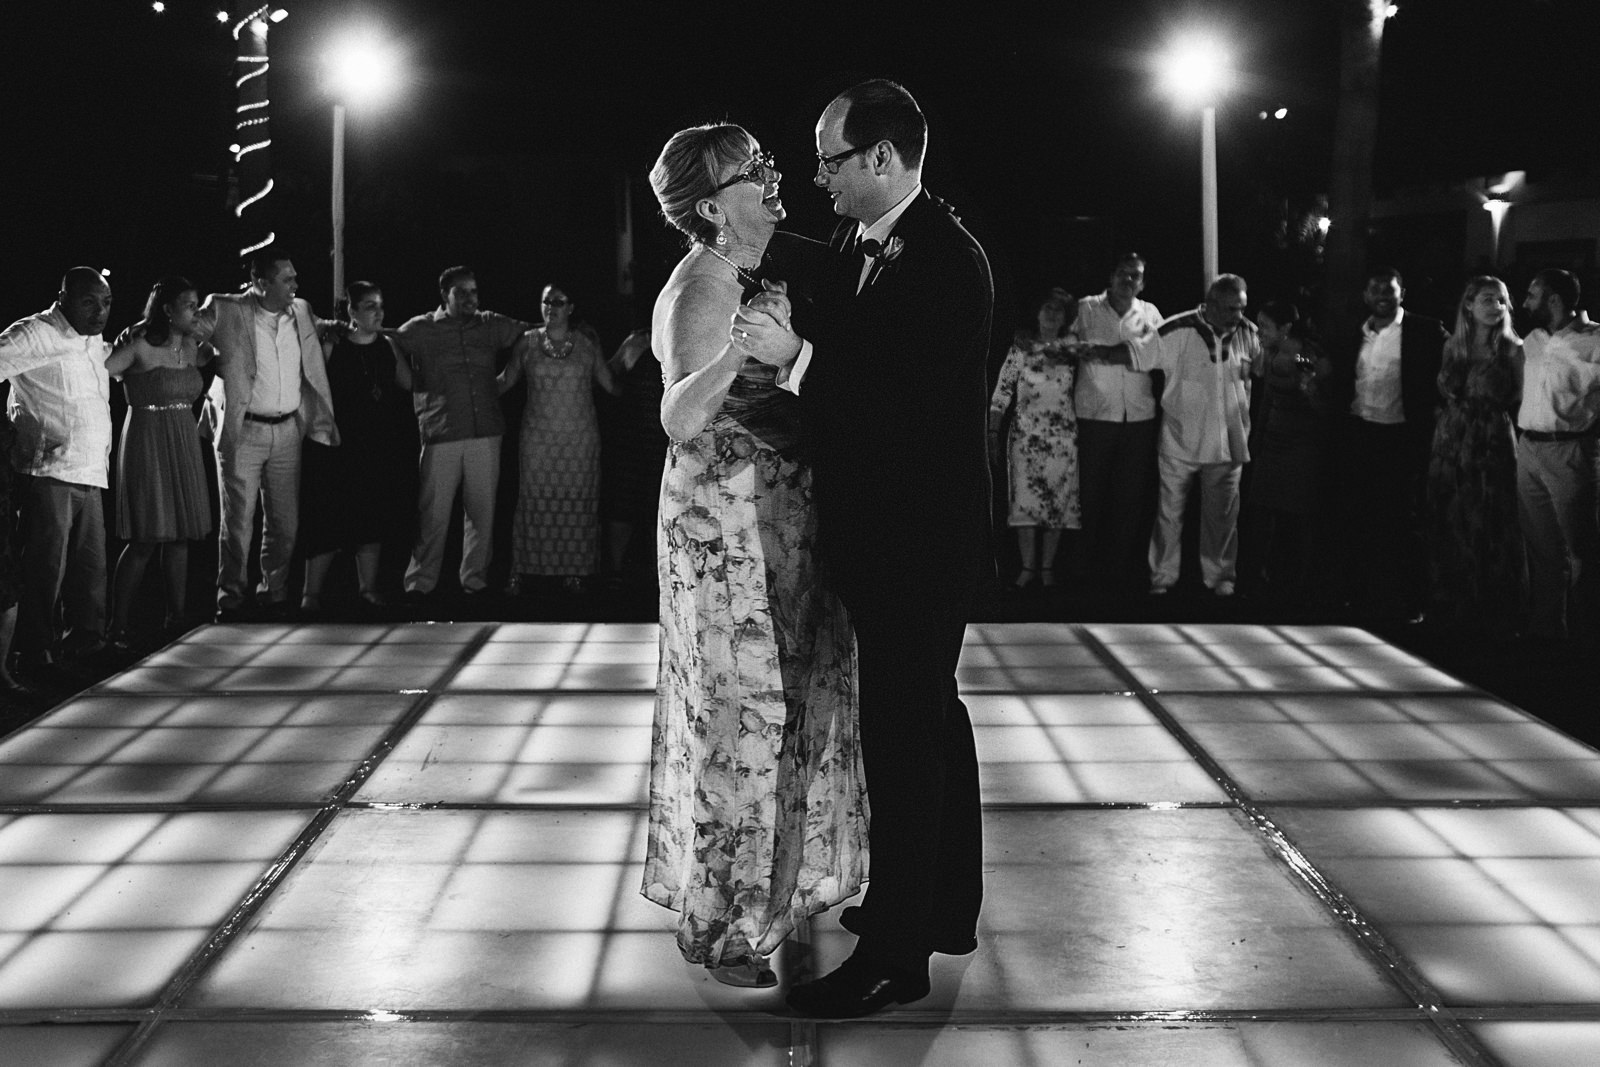 Mother and son dance on retro-iluminated dance floor - black and white photo